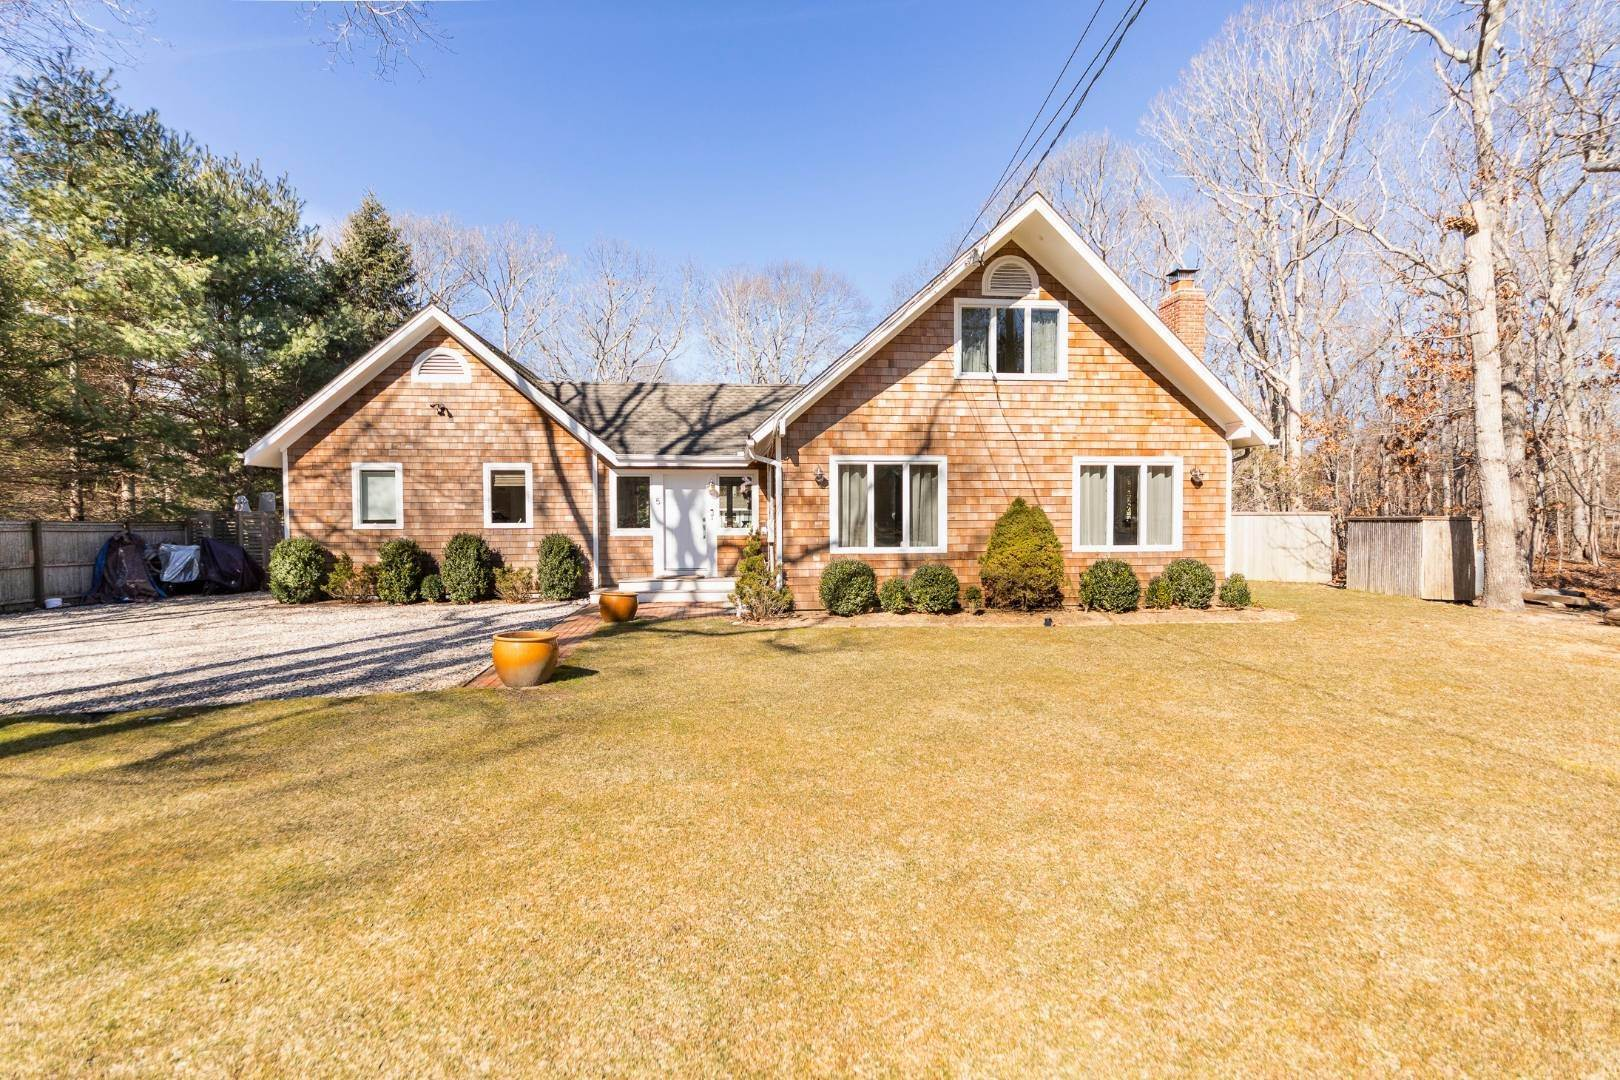 Single Family Home for Sale at Clearwater Modern 5 Dorset Road, East Hampton, NY 11937